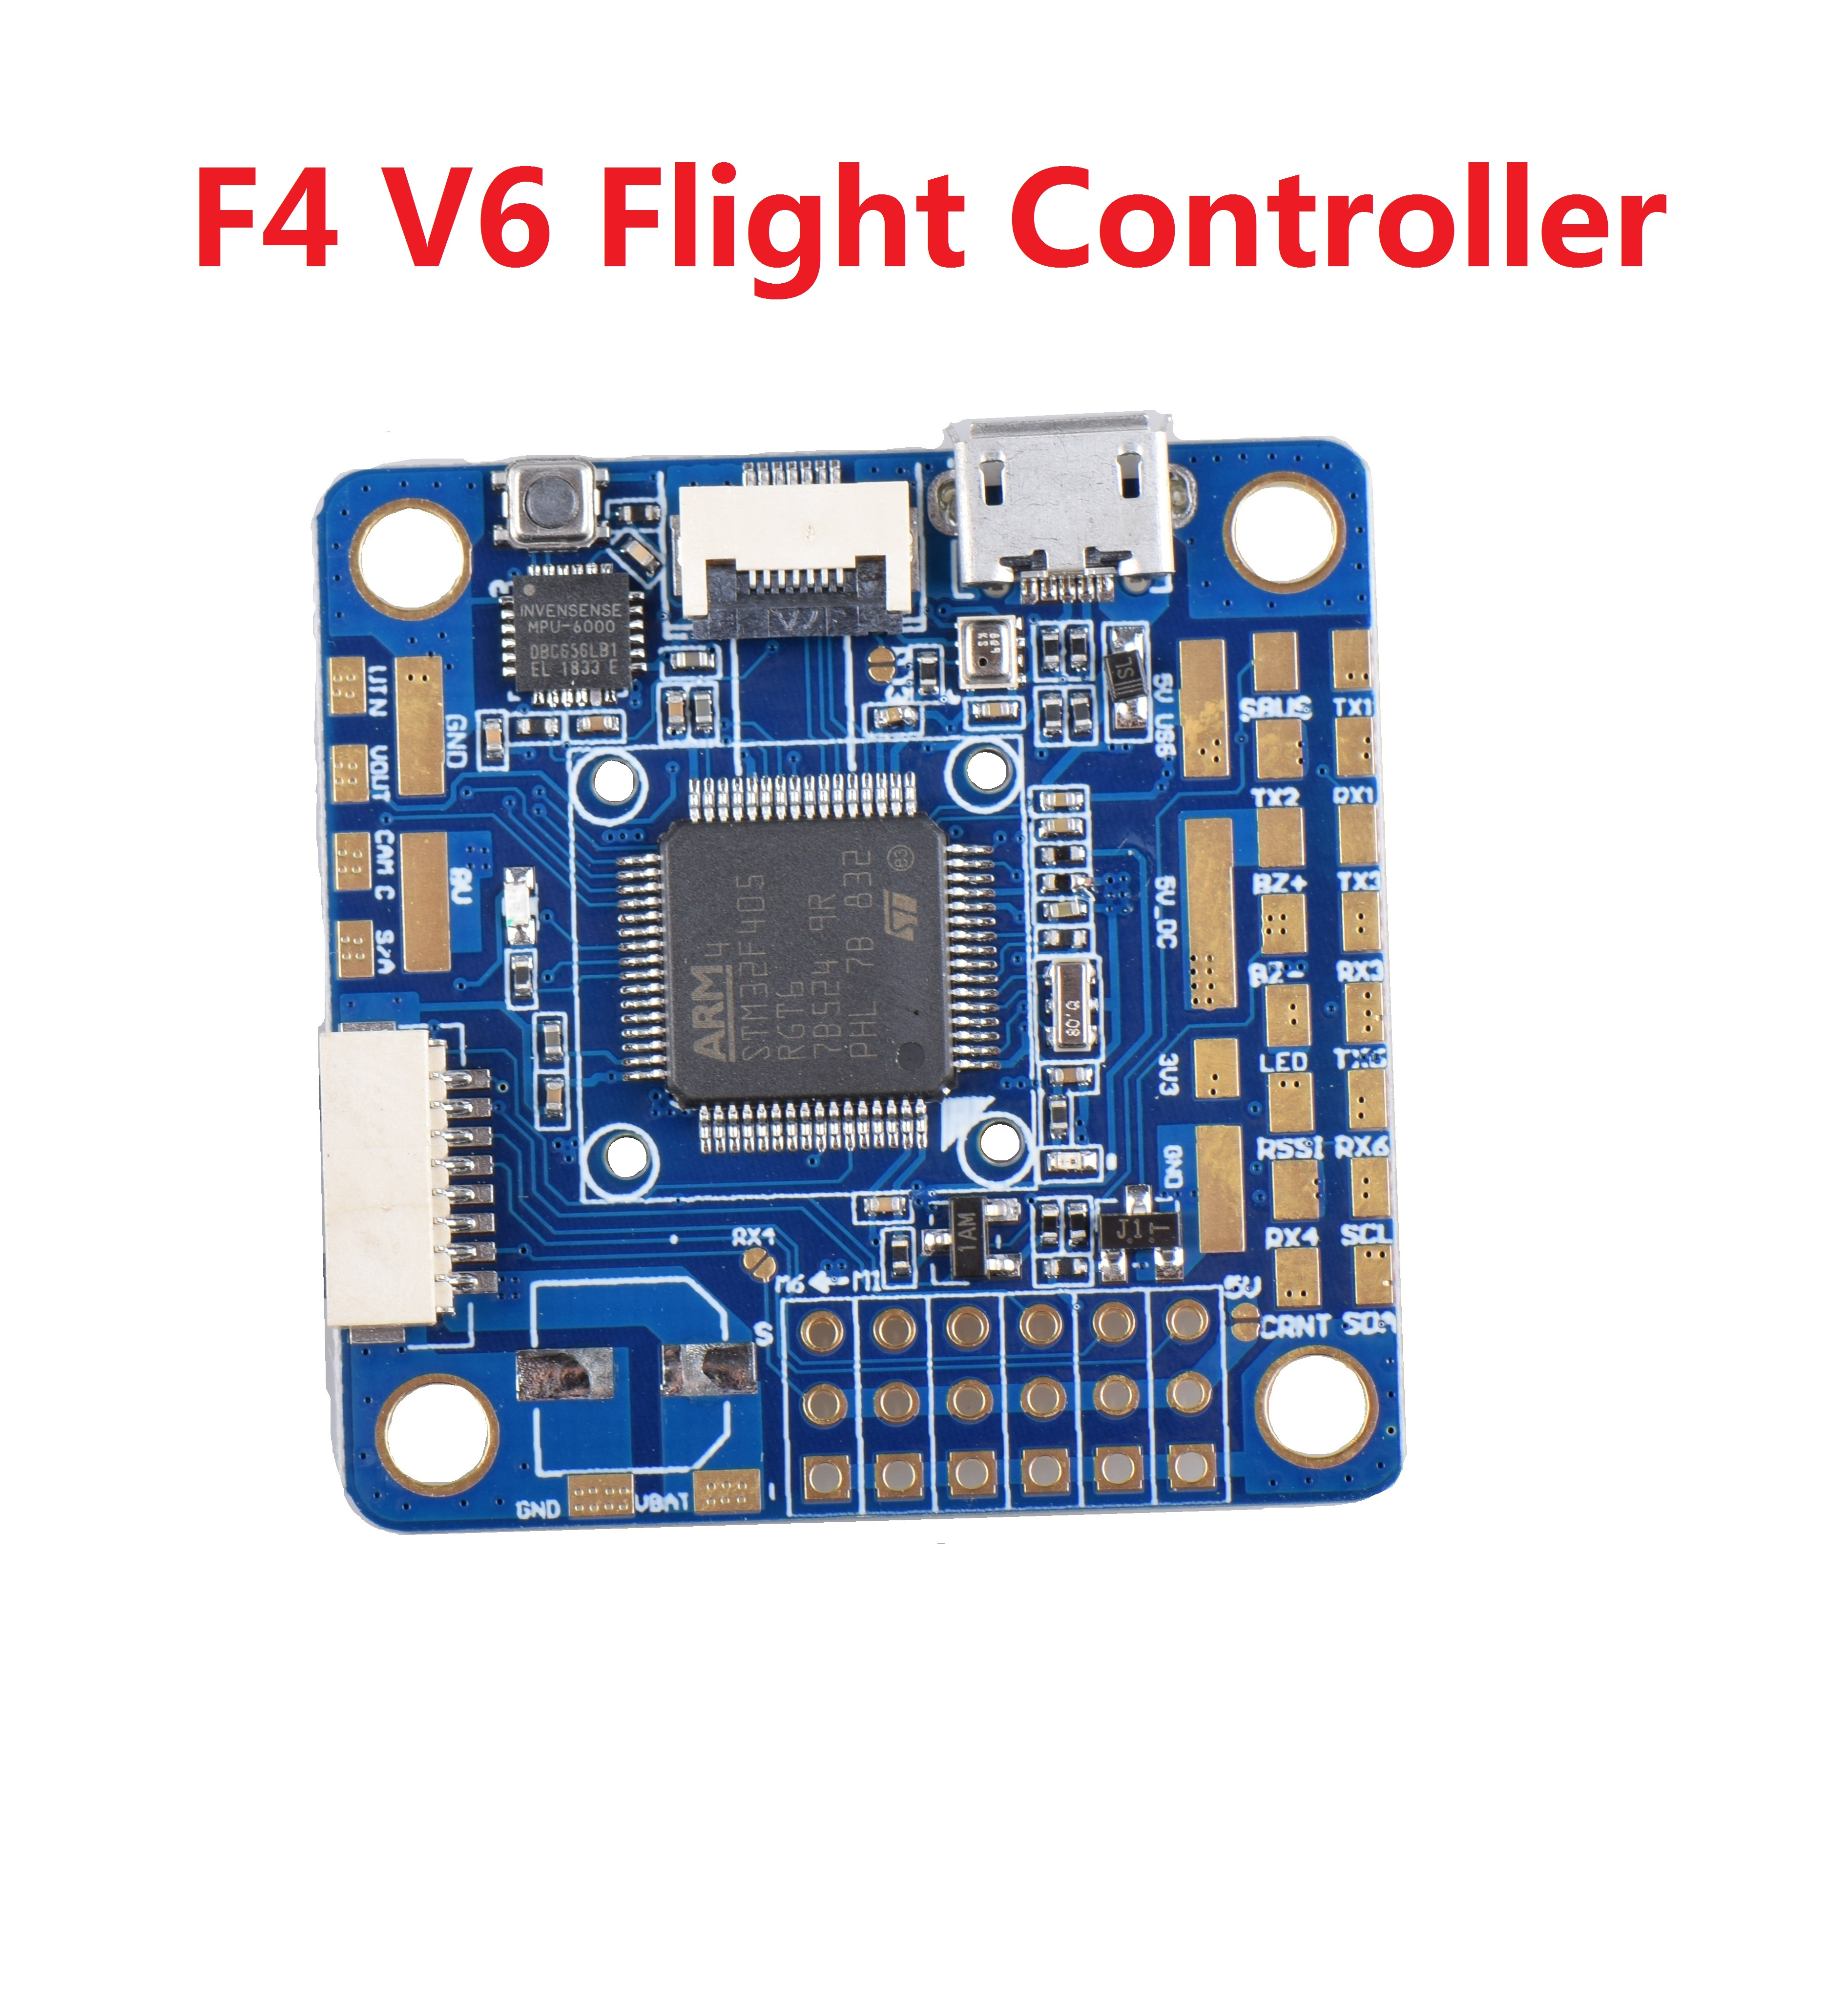 Betaflight F4 V6 Flight Controller OSD STM32 F405 5x UARTs 30.5x30.5mm for RC Drone as shown